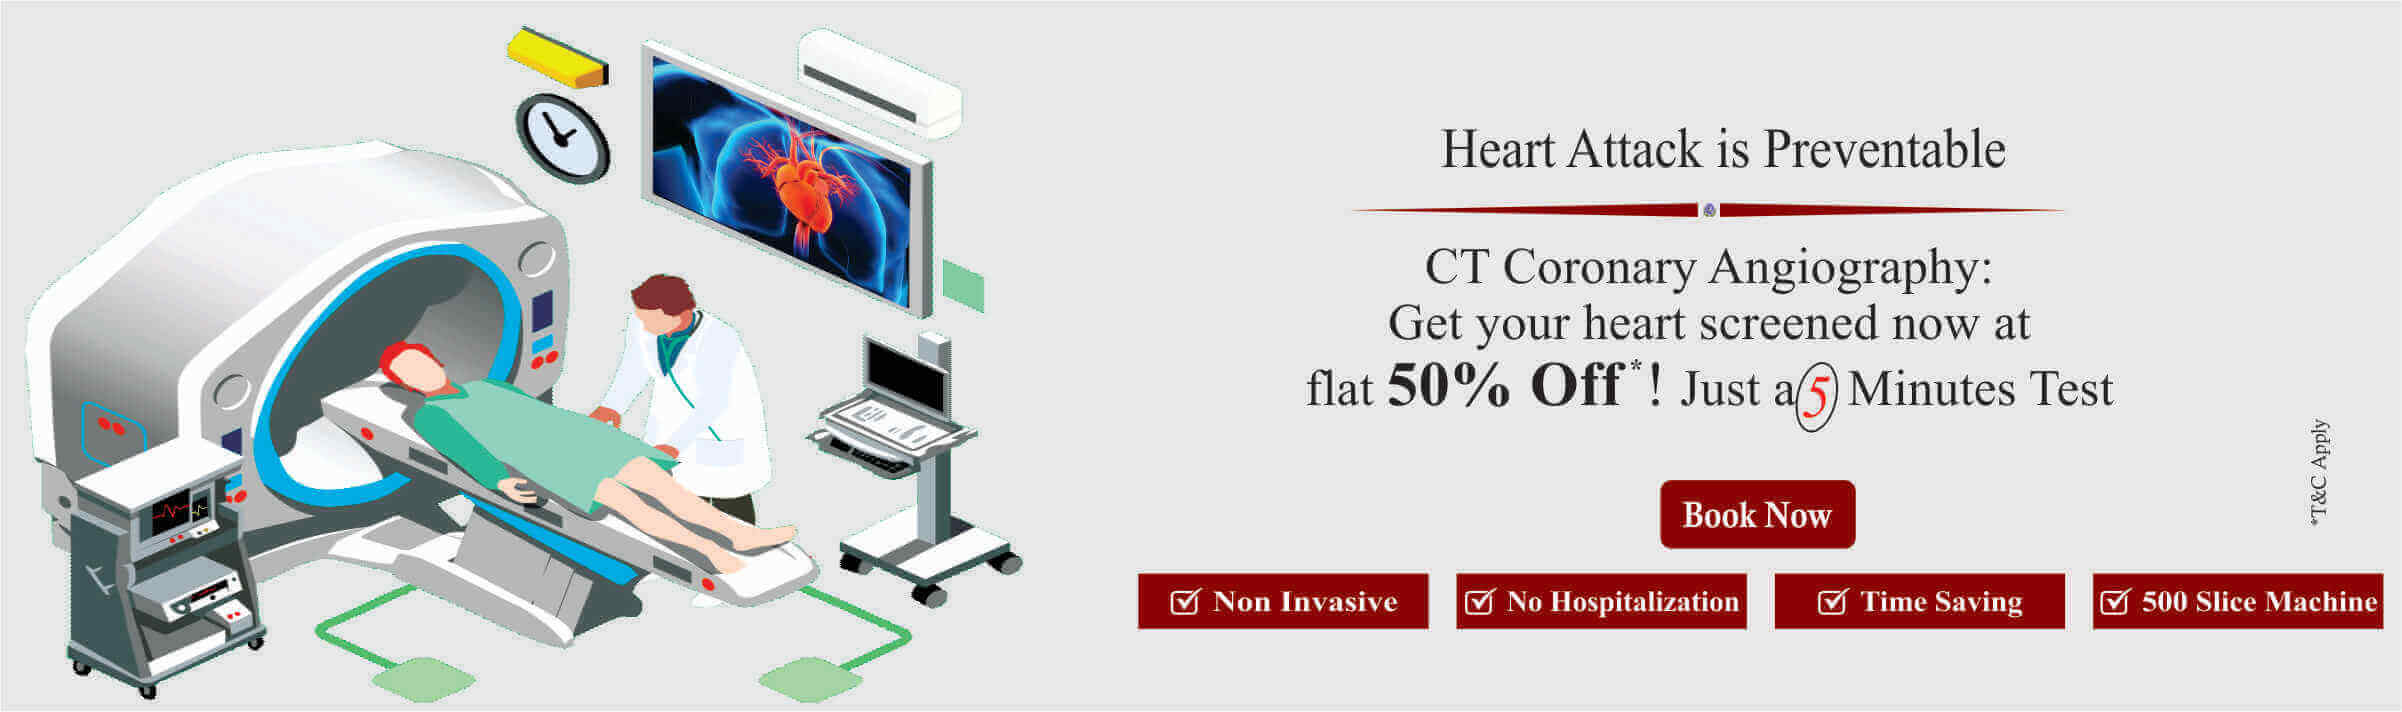 CT Coronary Angiography